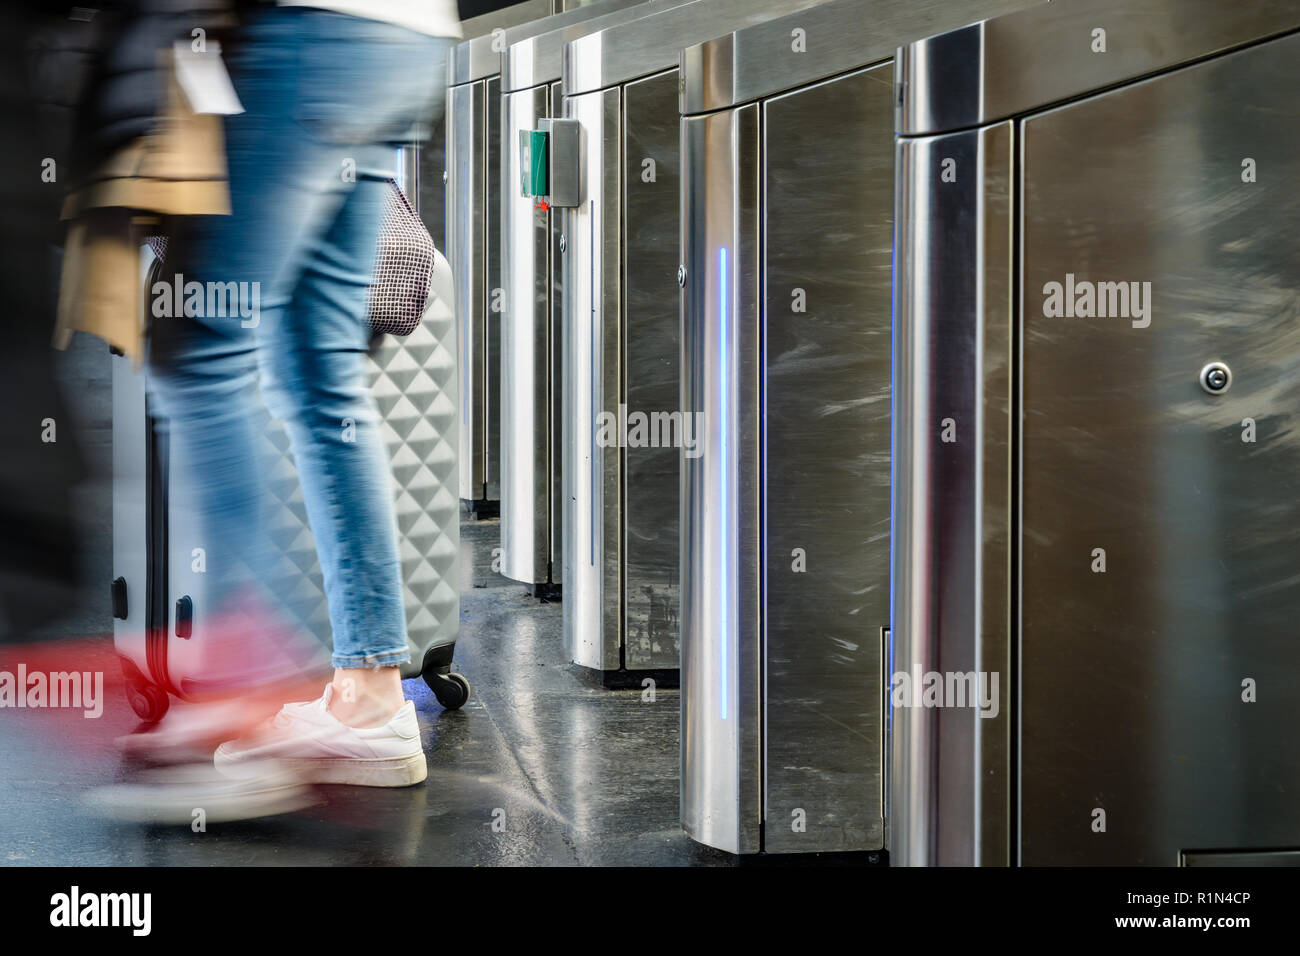 Side view of a woman with a rolling suitcase passing through stainless steel ticket gates in a public transportation station in Paris with motion blur - Stock Image